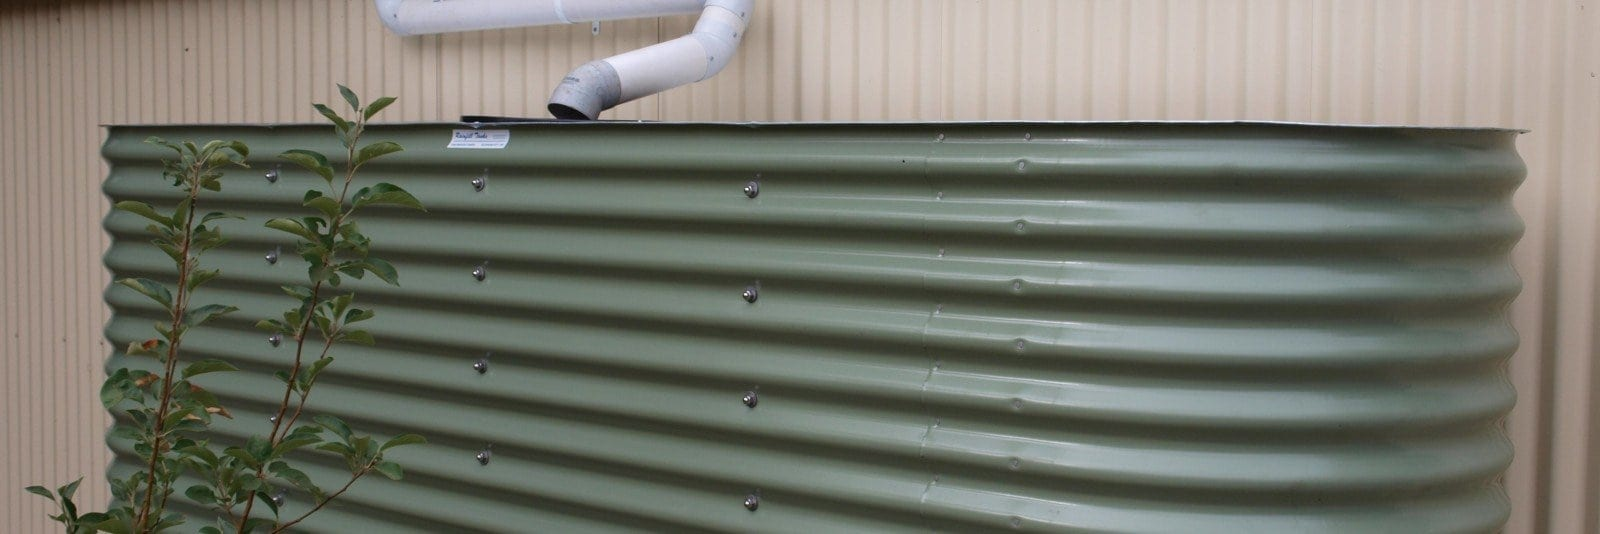 Supplying rainwater tanks in Perth, WA